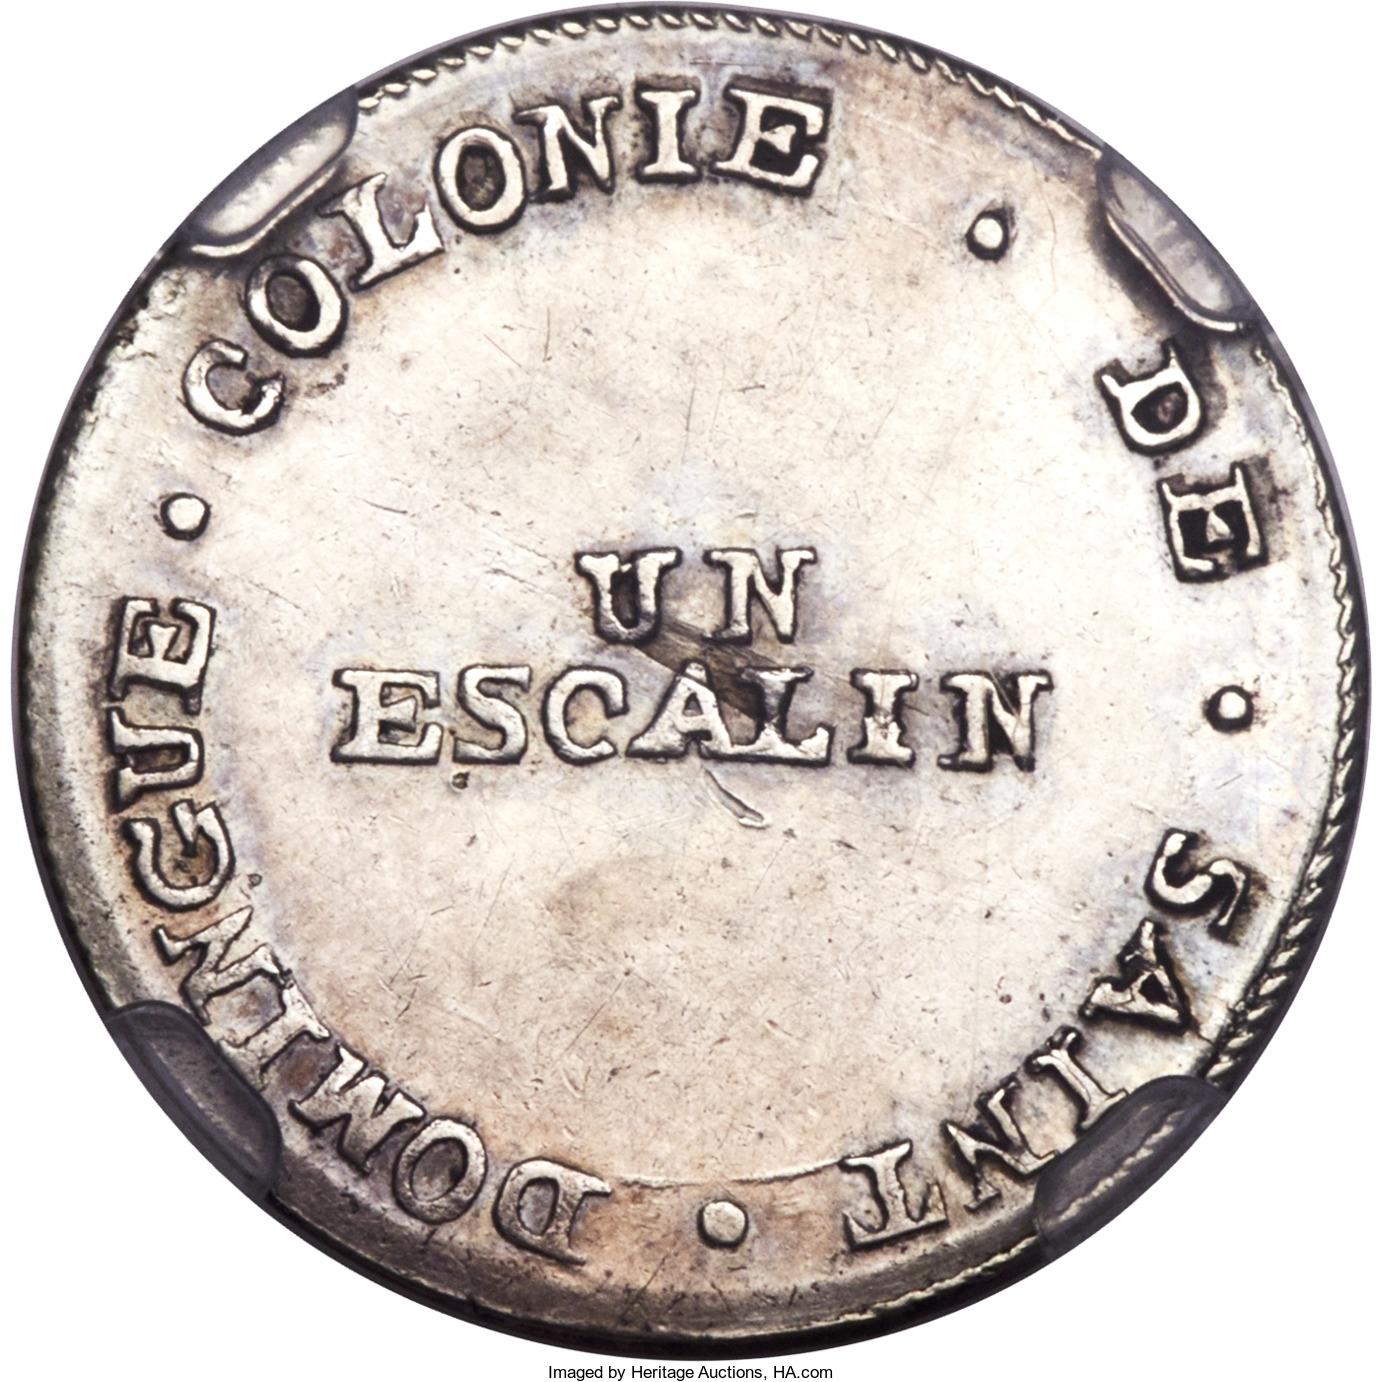 Colonia francesa de Saint domingue 1802. un escalin.